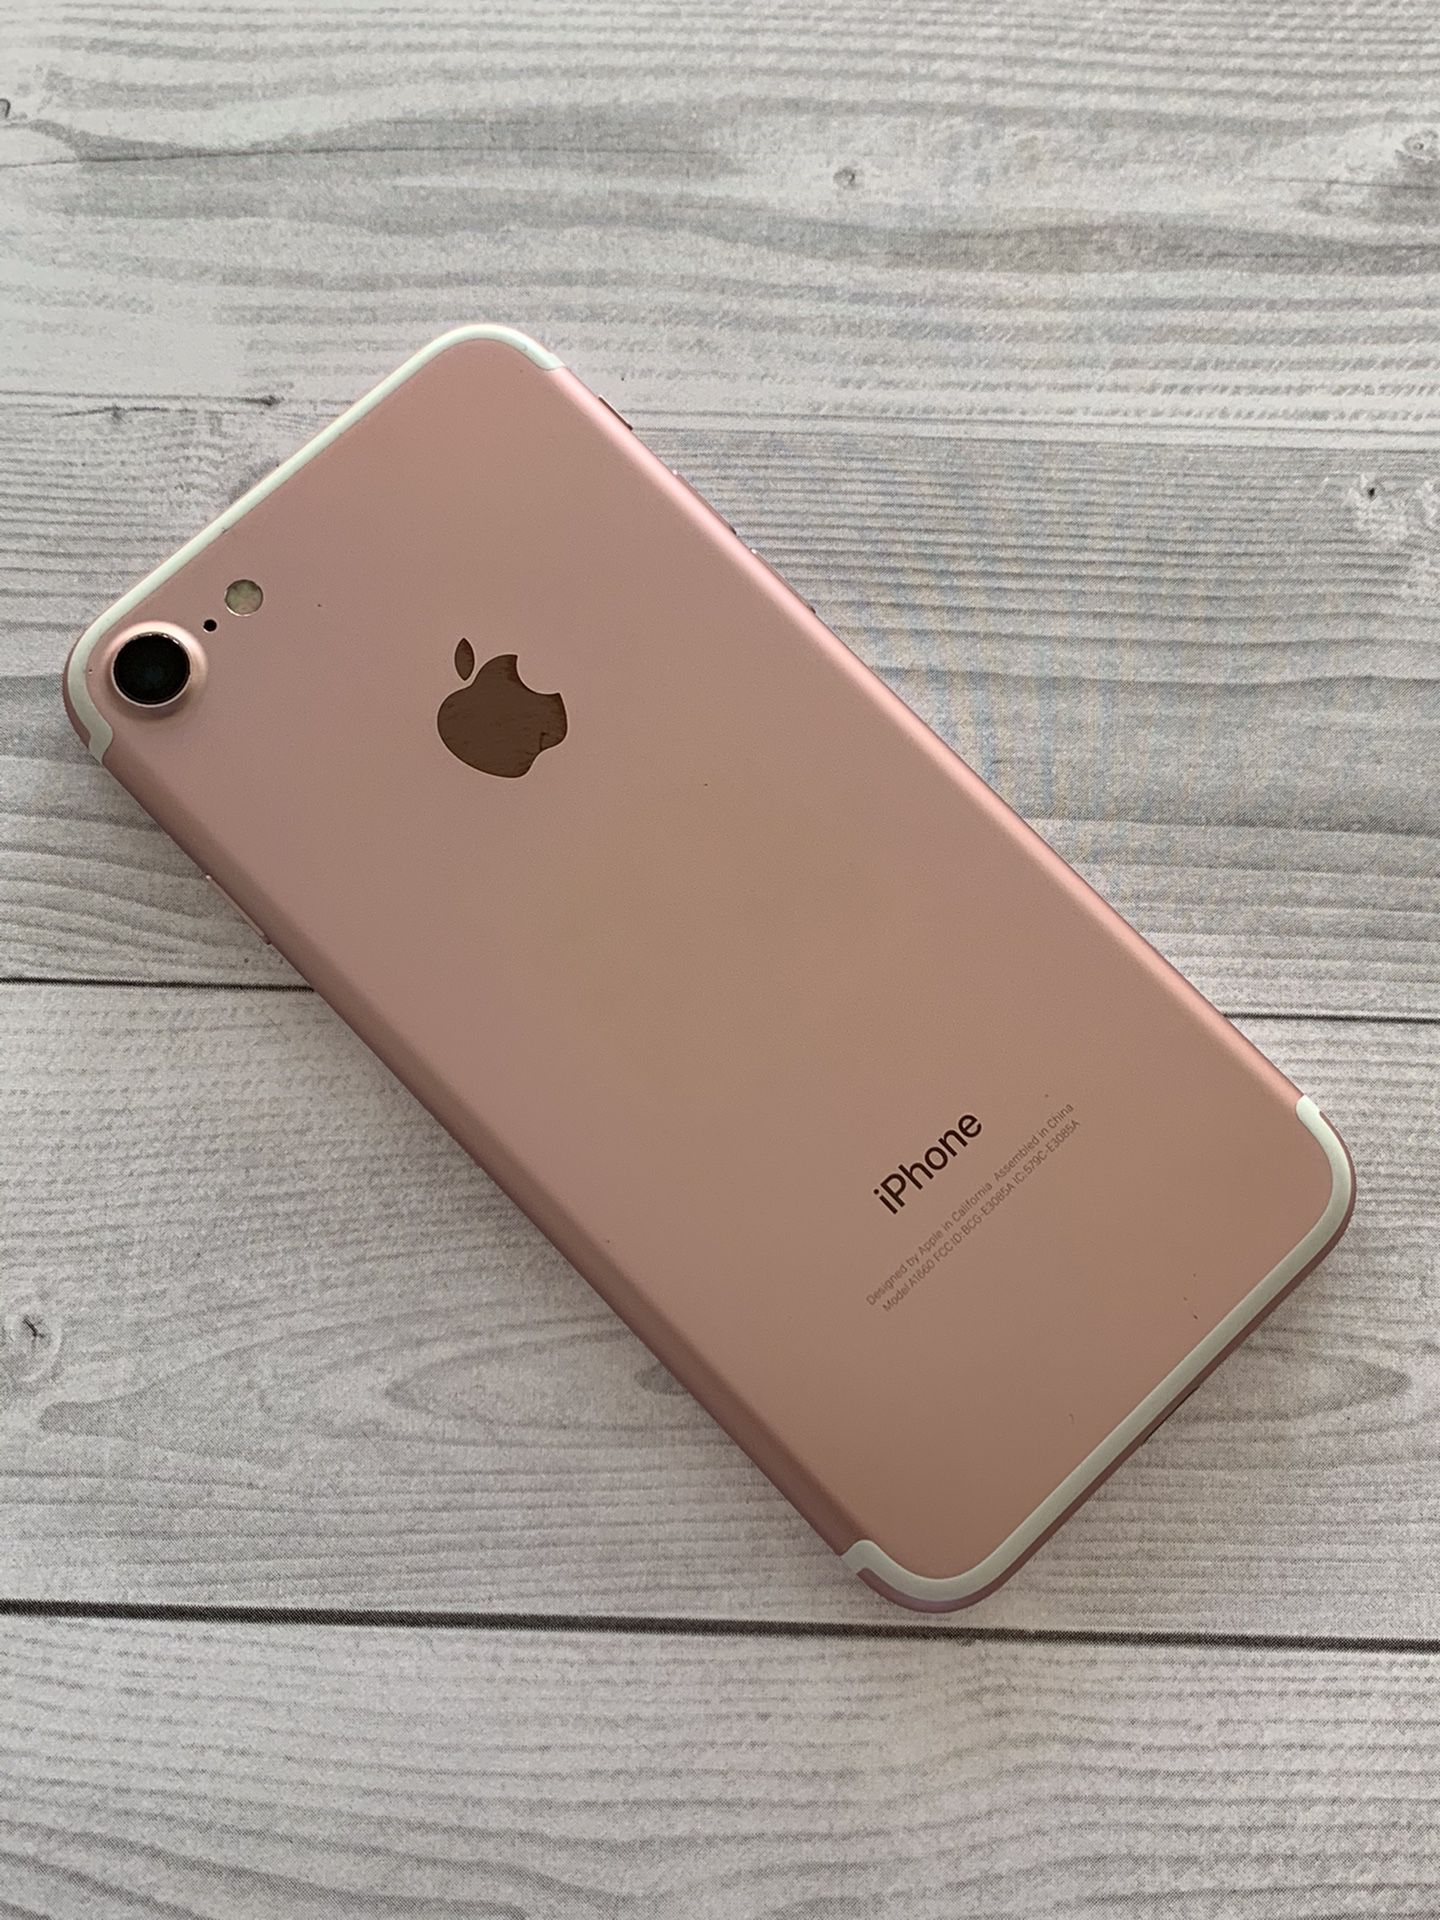 IPHONE 7 32gb,factory Unlocked,very Good Condition,each